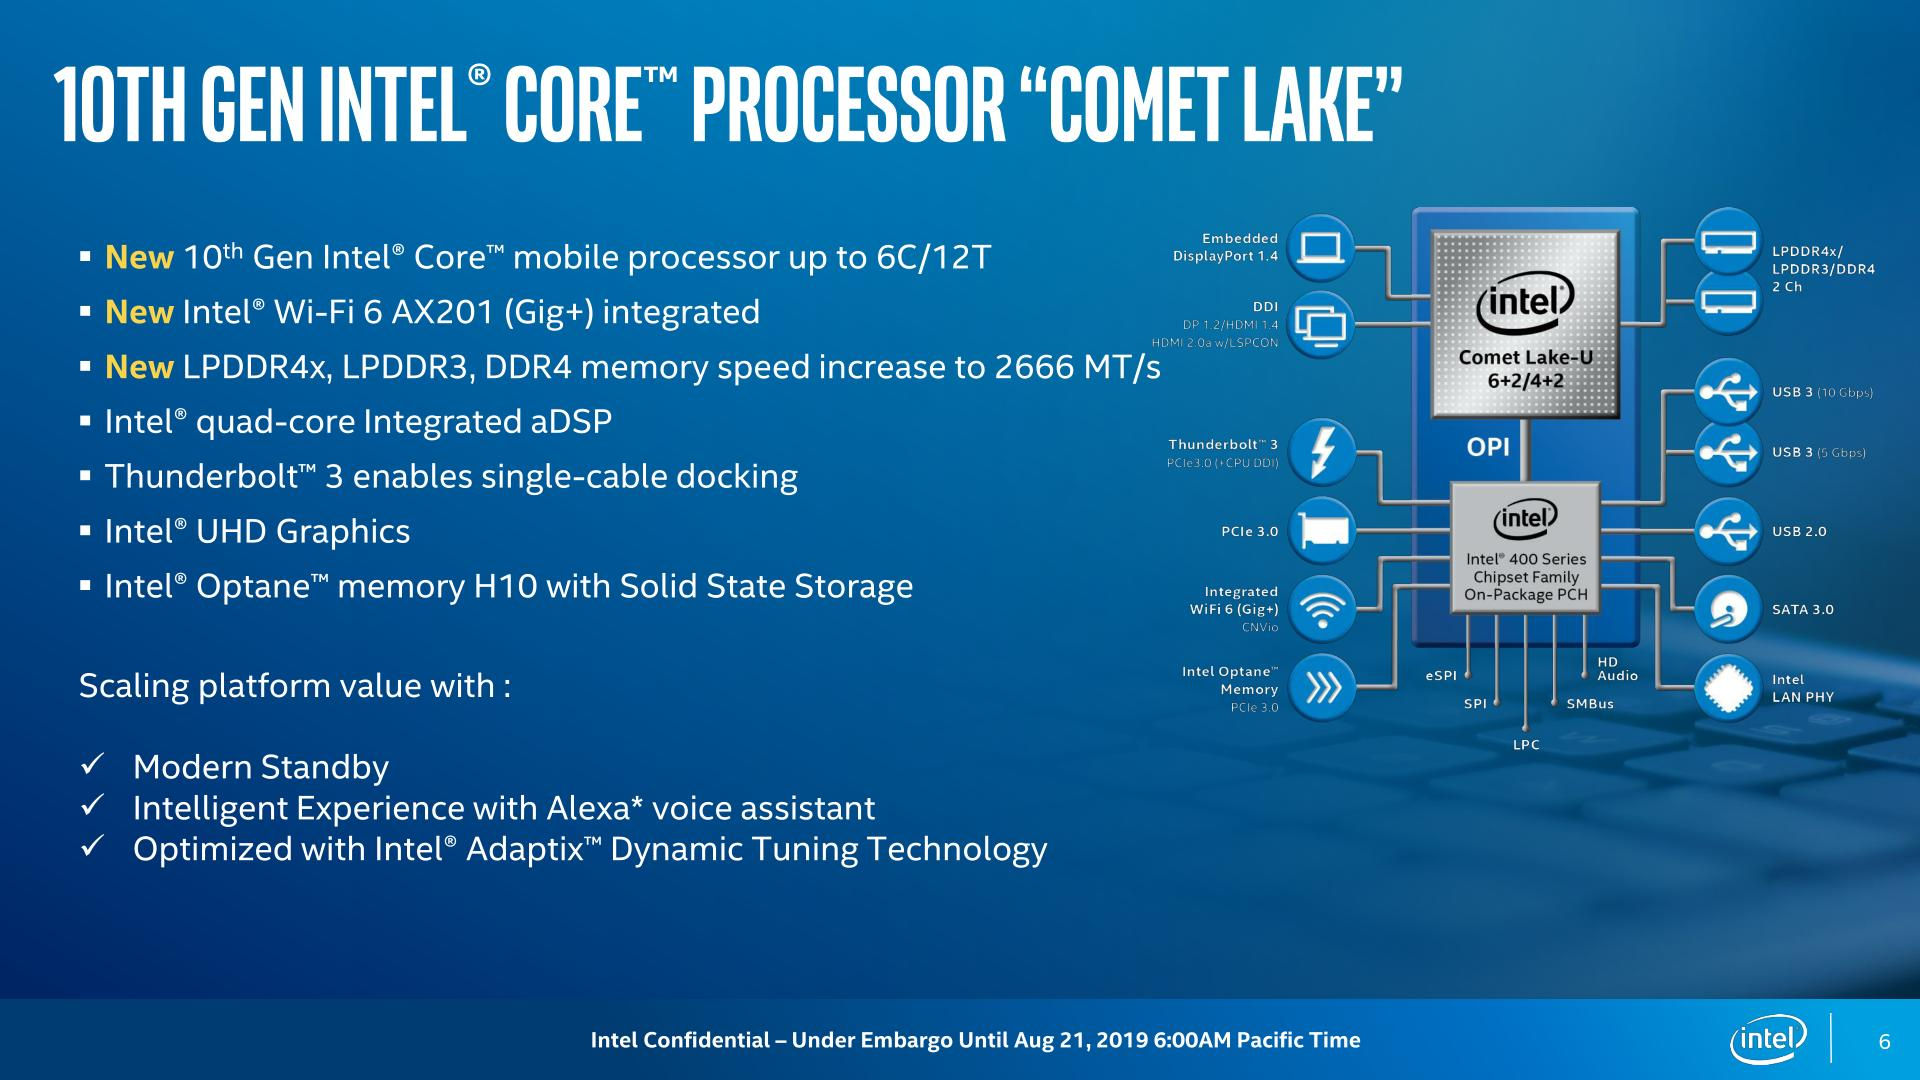 10th Gen Comet Lake_UNDER EMBARGO UNTIL Aug 21 2019 600 AM PT_06.jpg